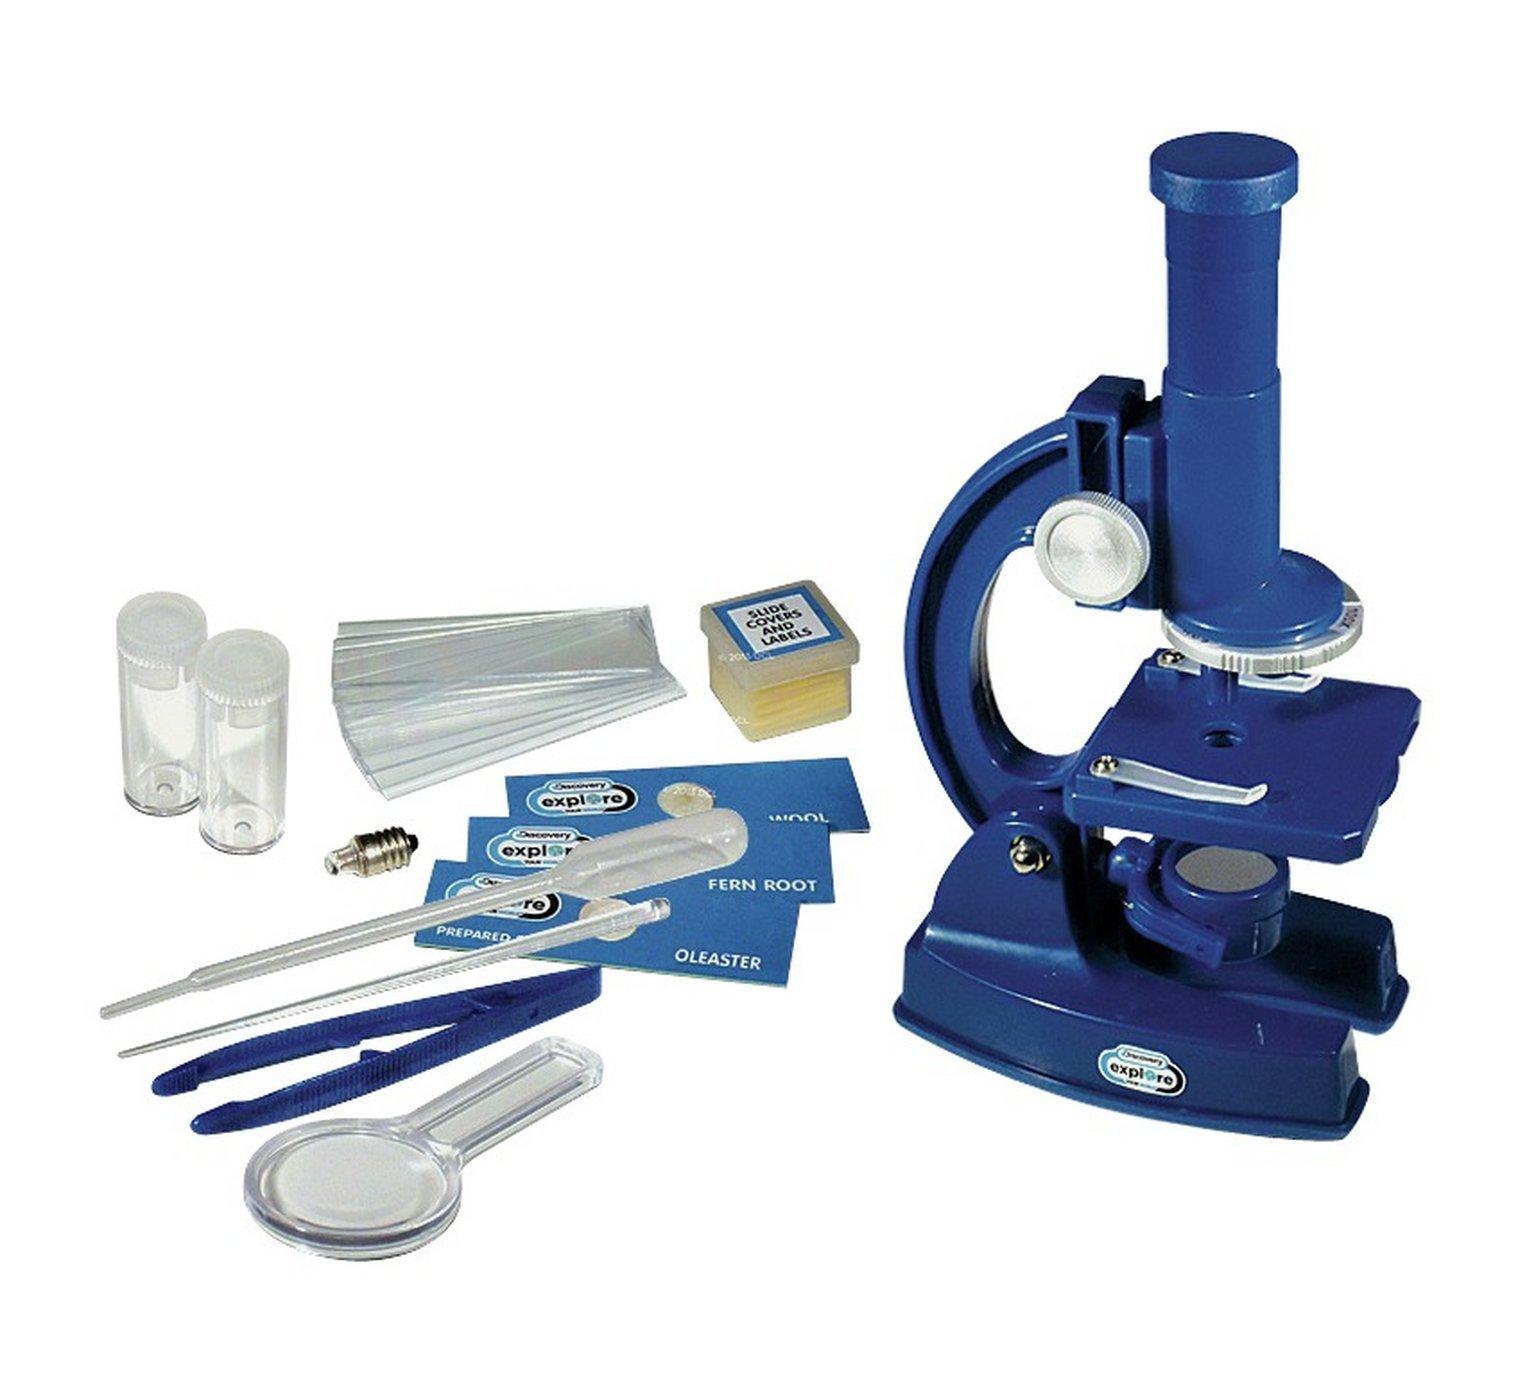 Image of Discovery Channel Microscope Set